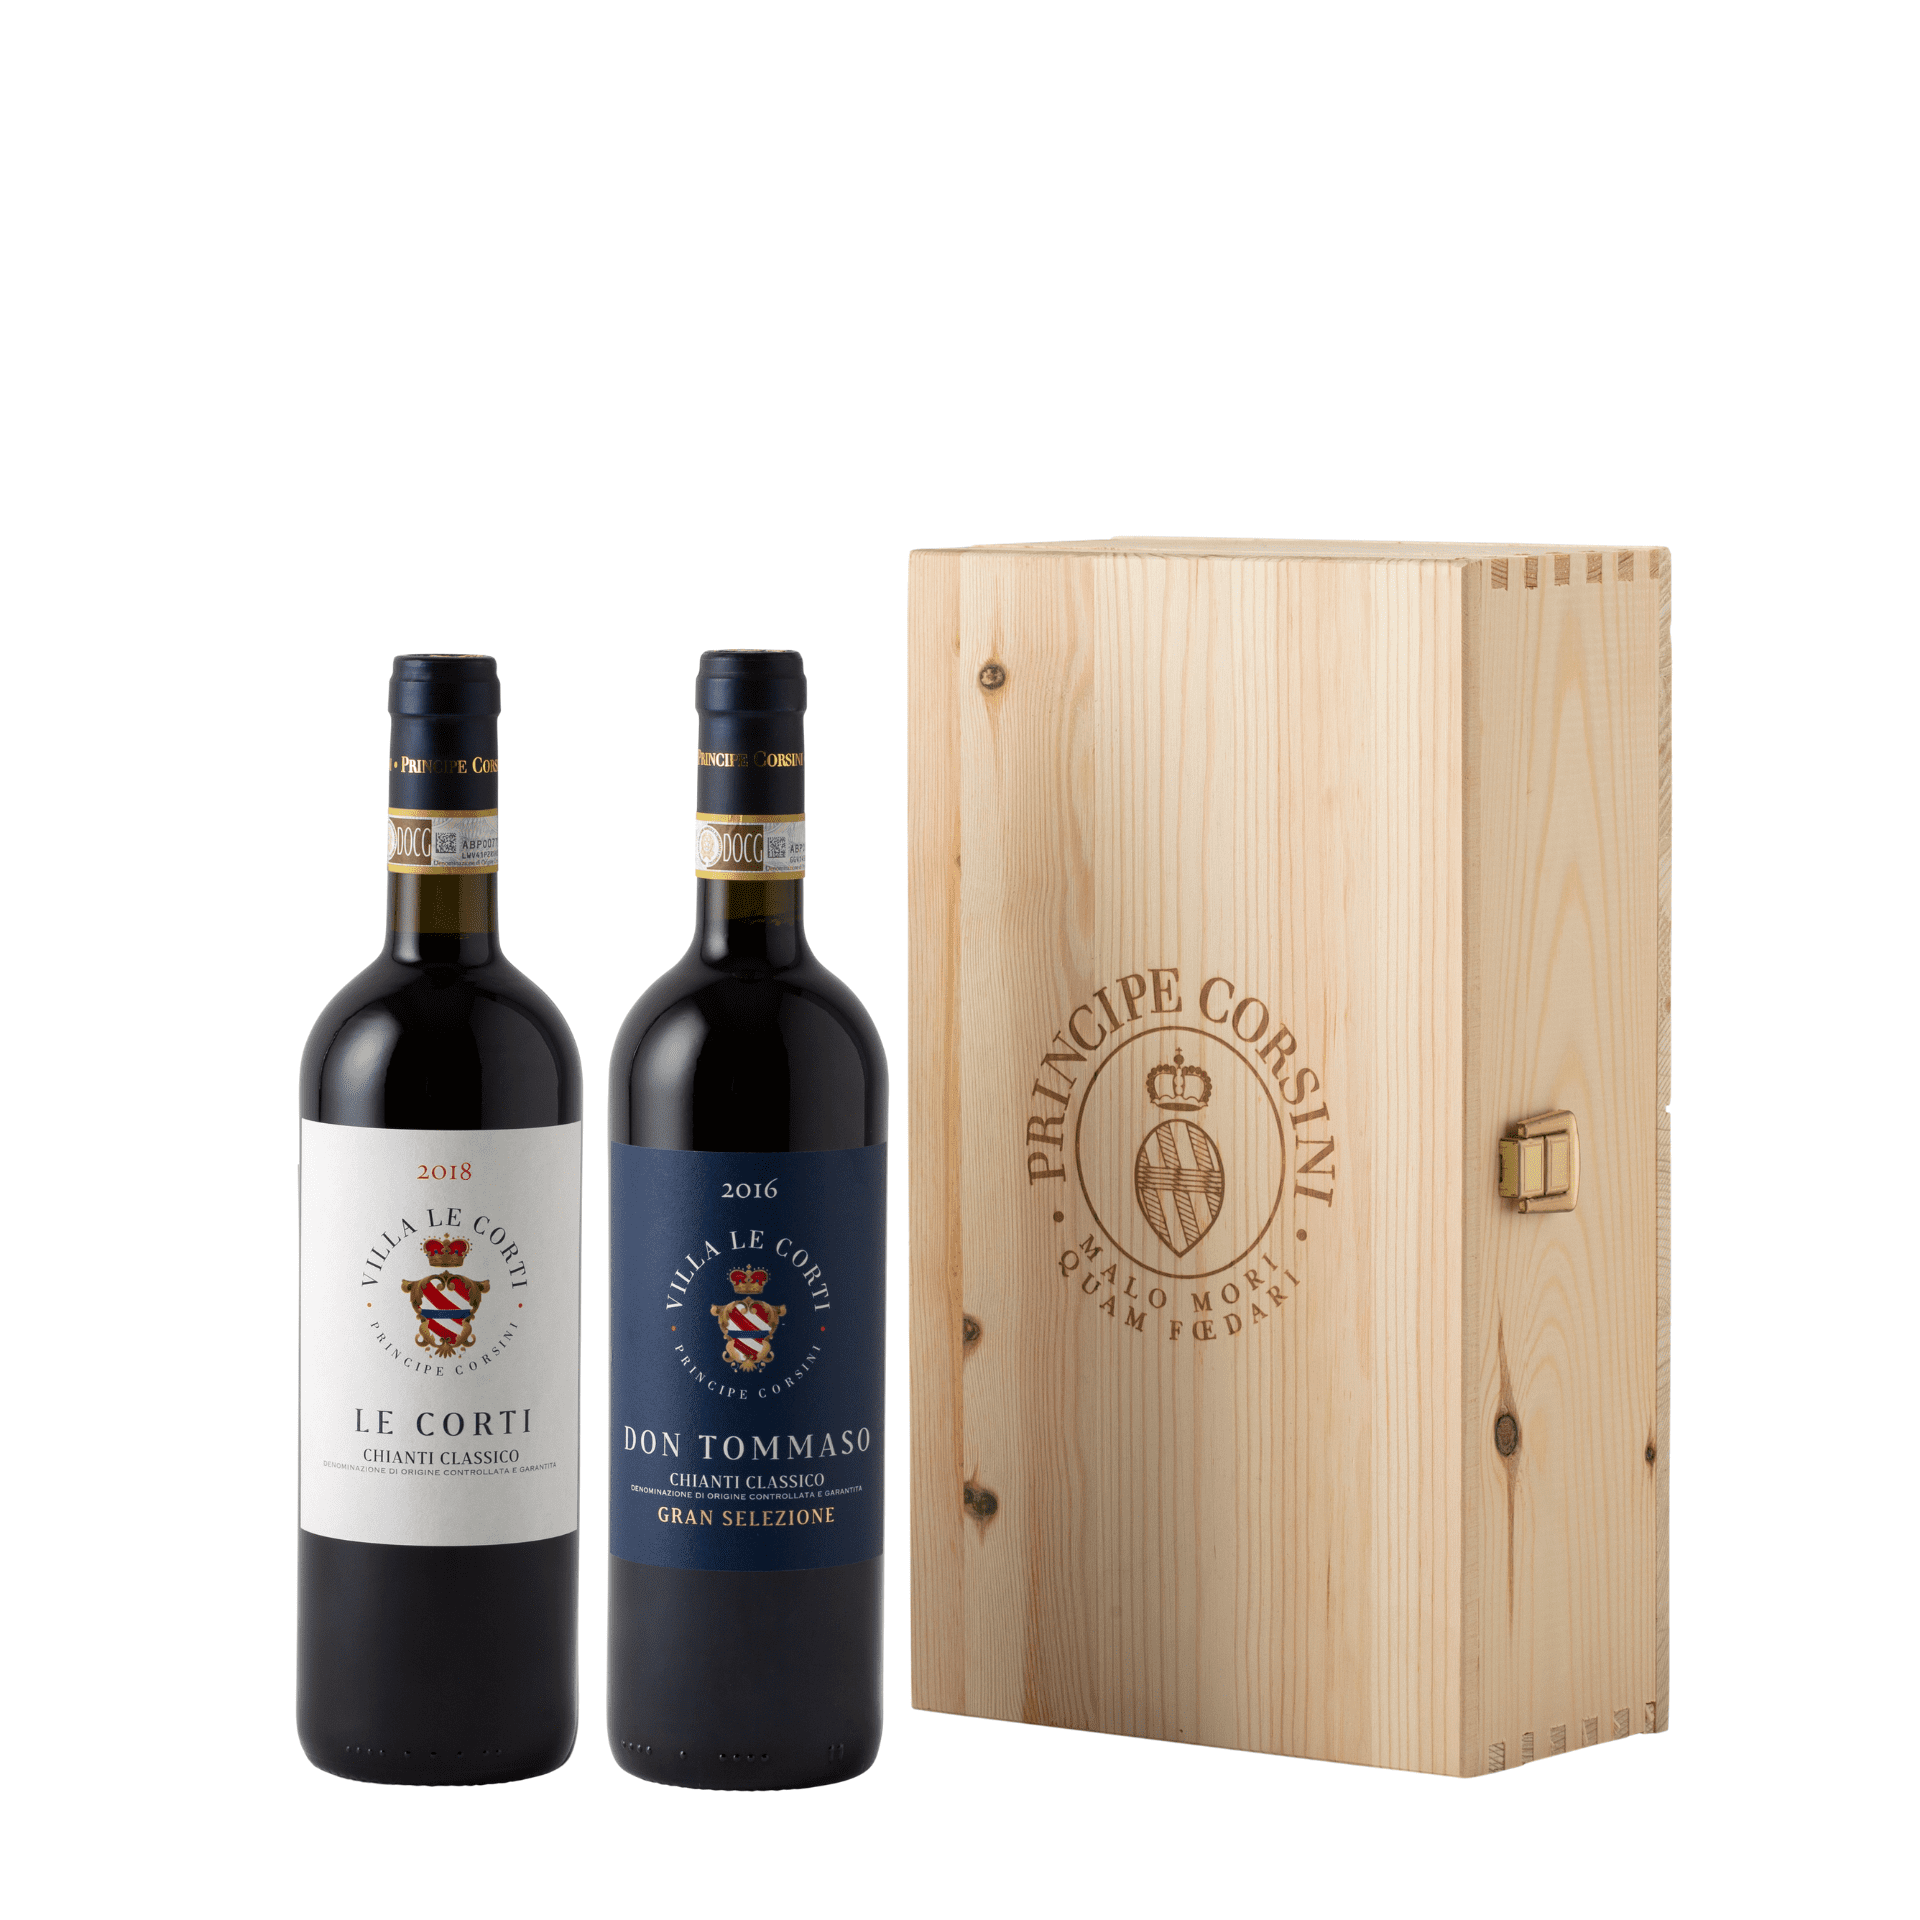 Don Tommaso 2016 + Le Corti 2018 + Wooden Box